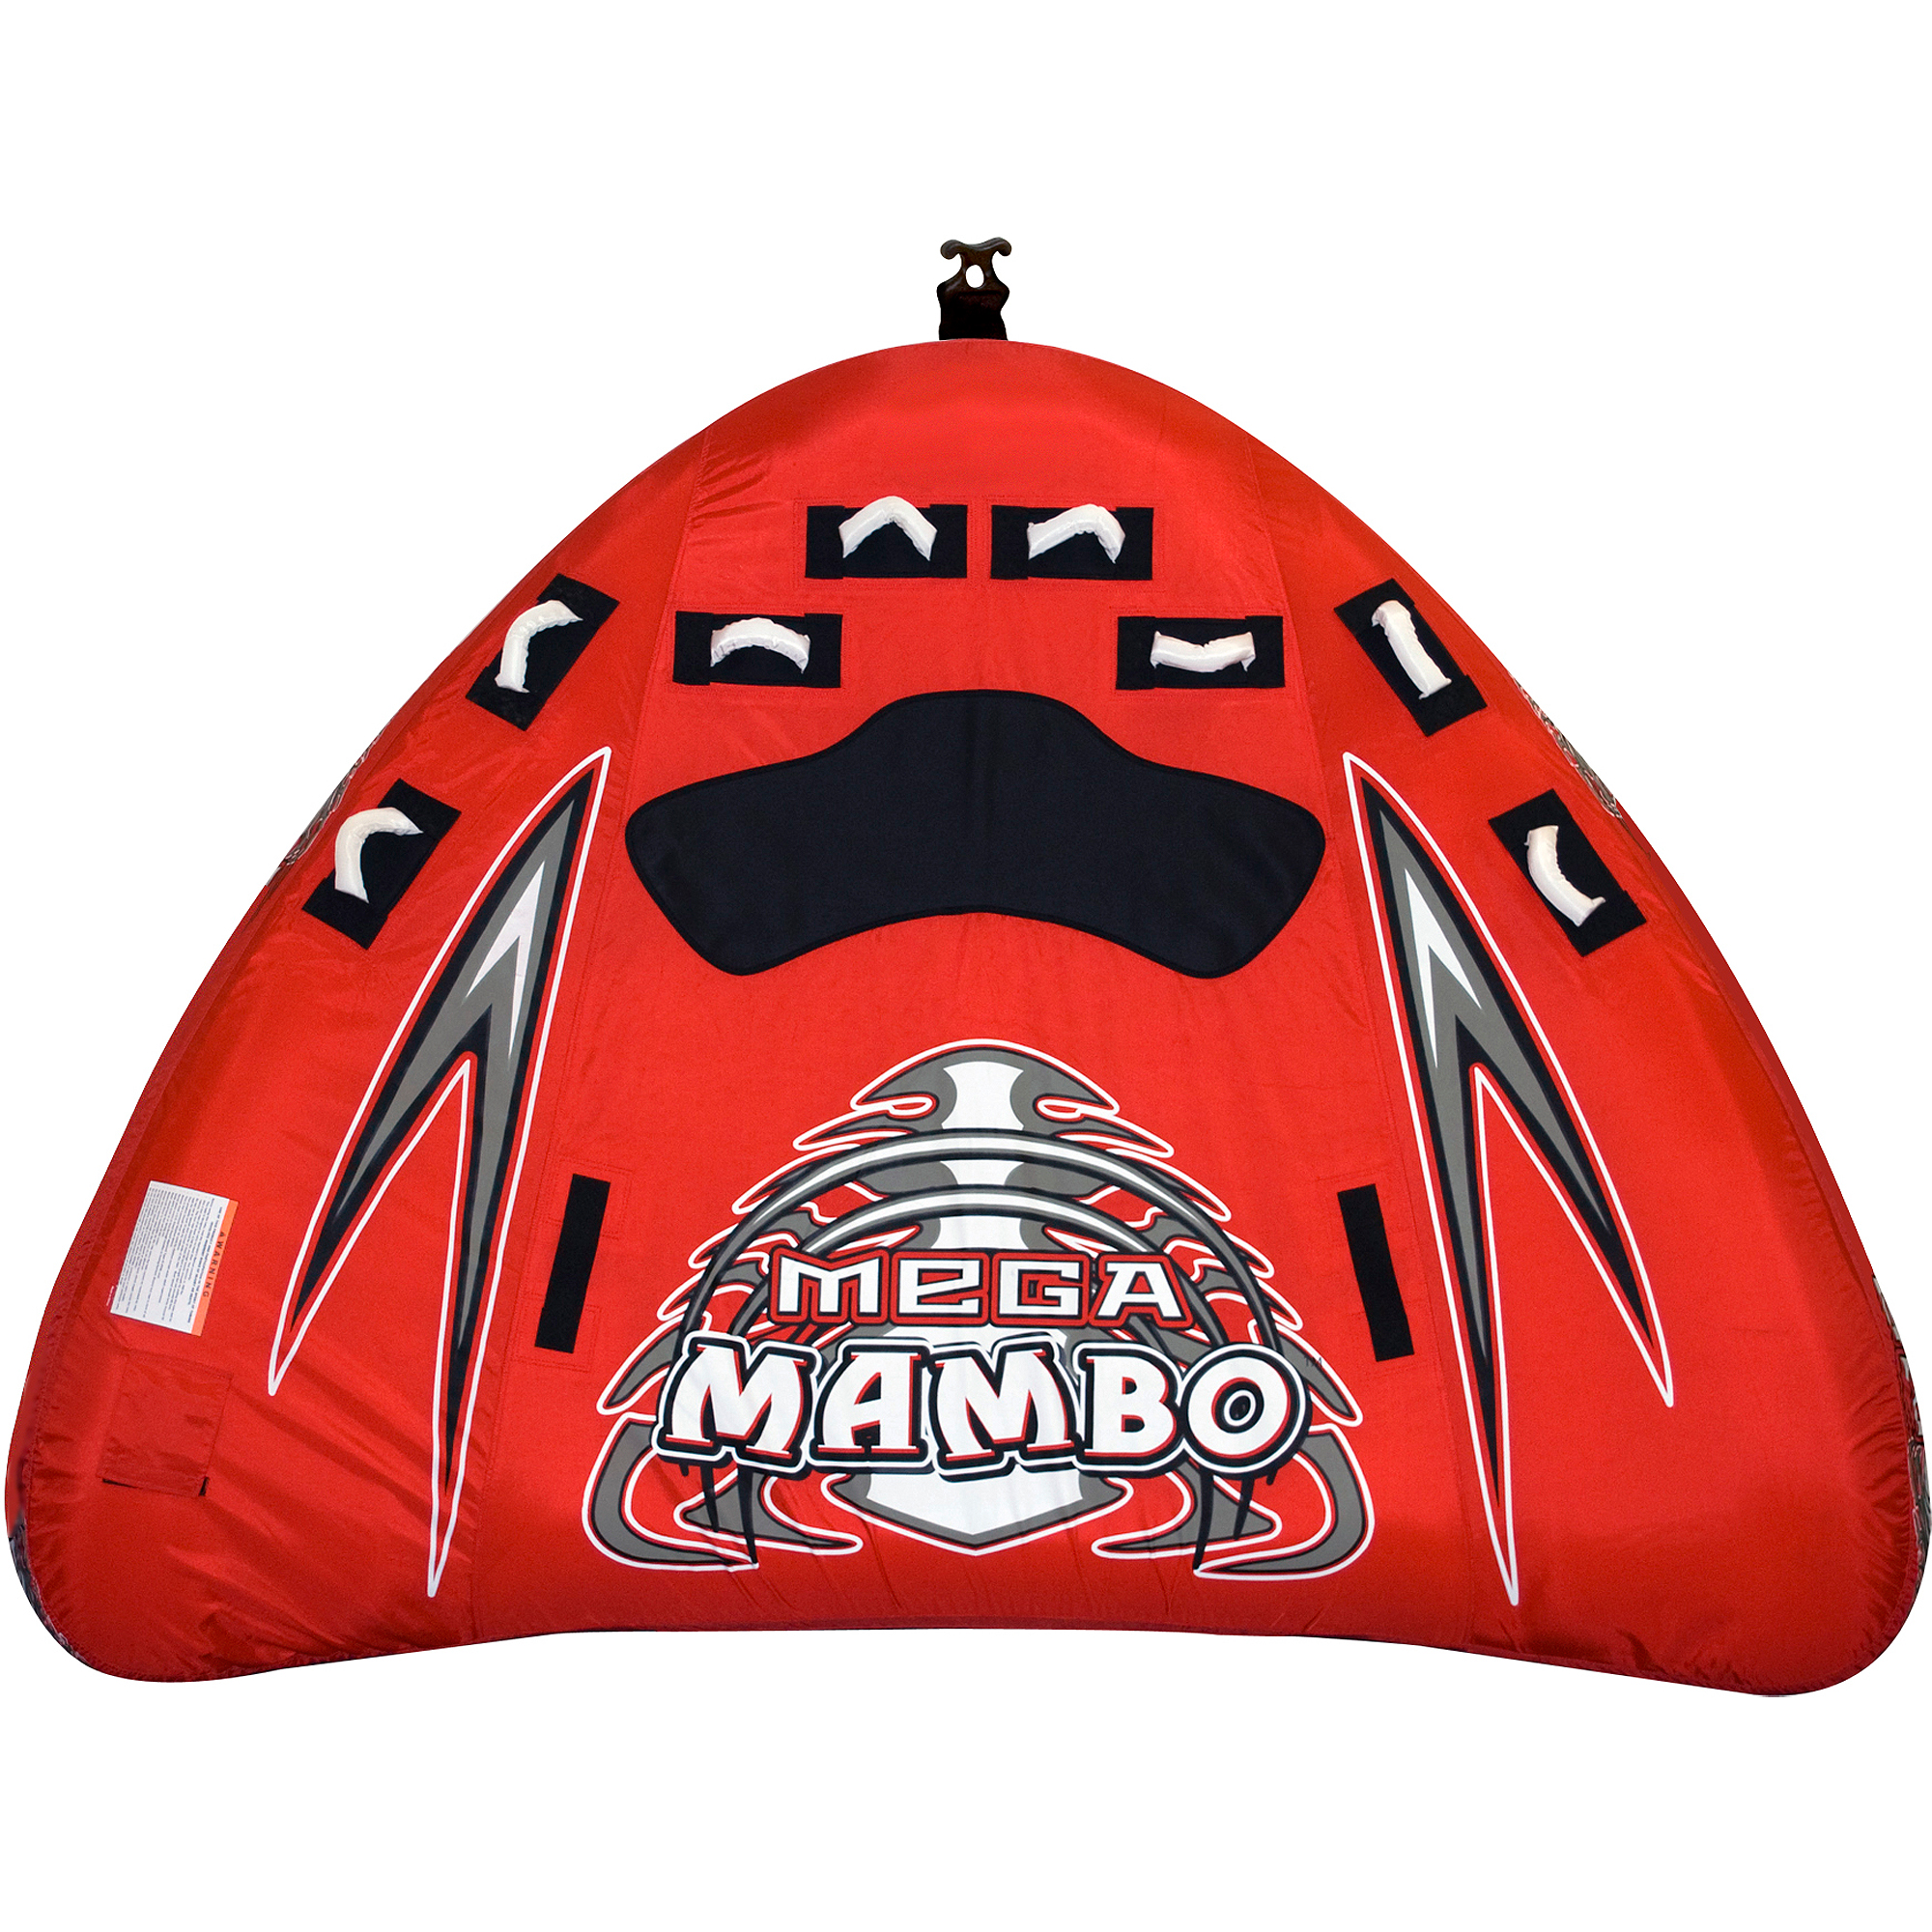 Rave Sports Mega Mambo 4-Rider Sleek Fast Water Towable